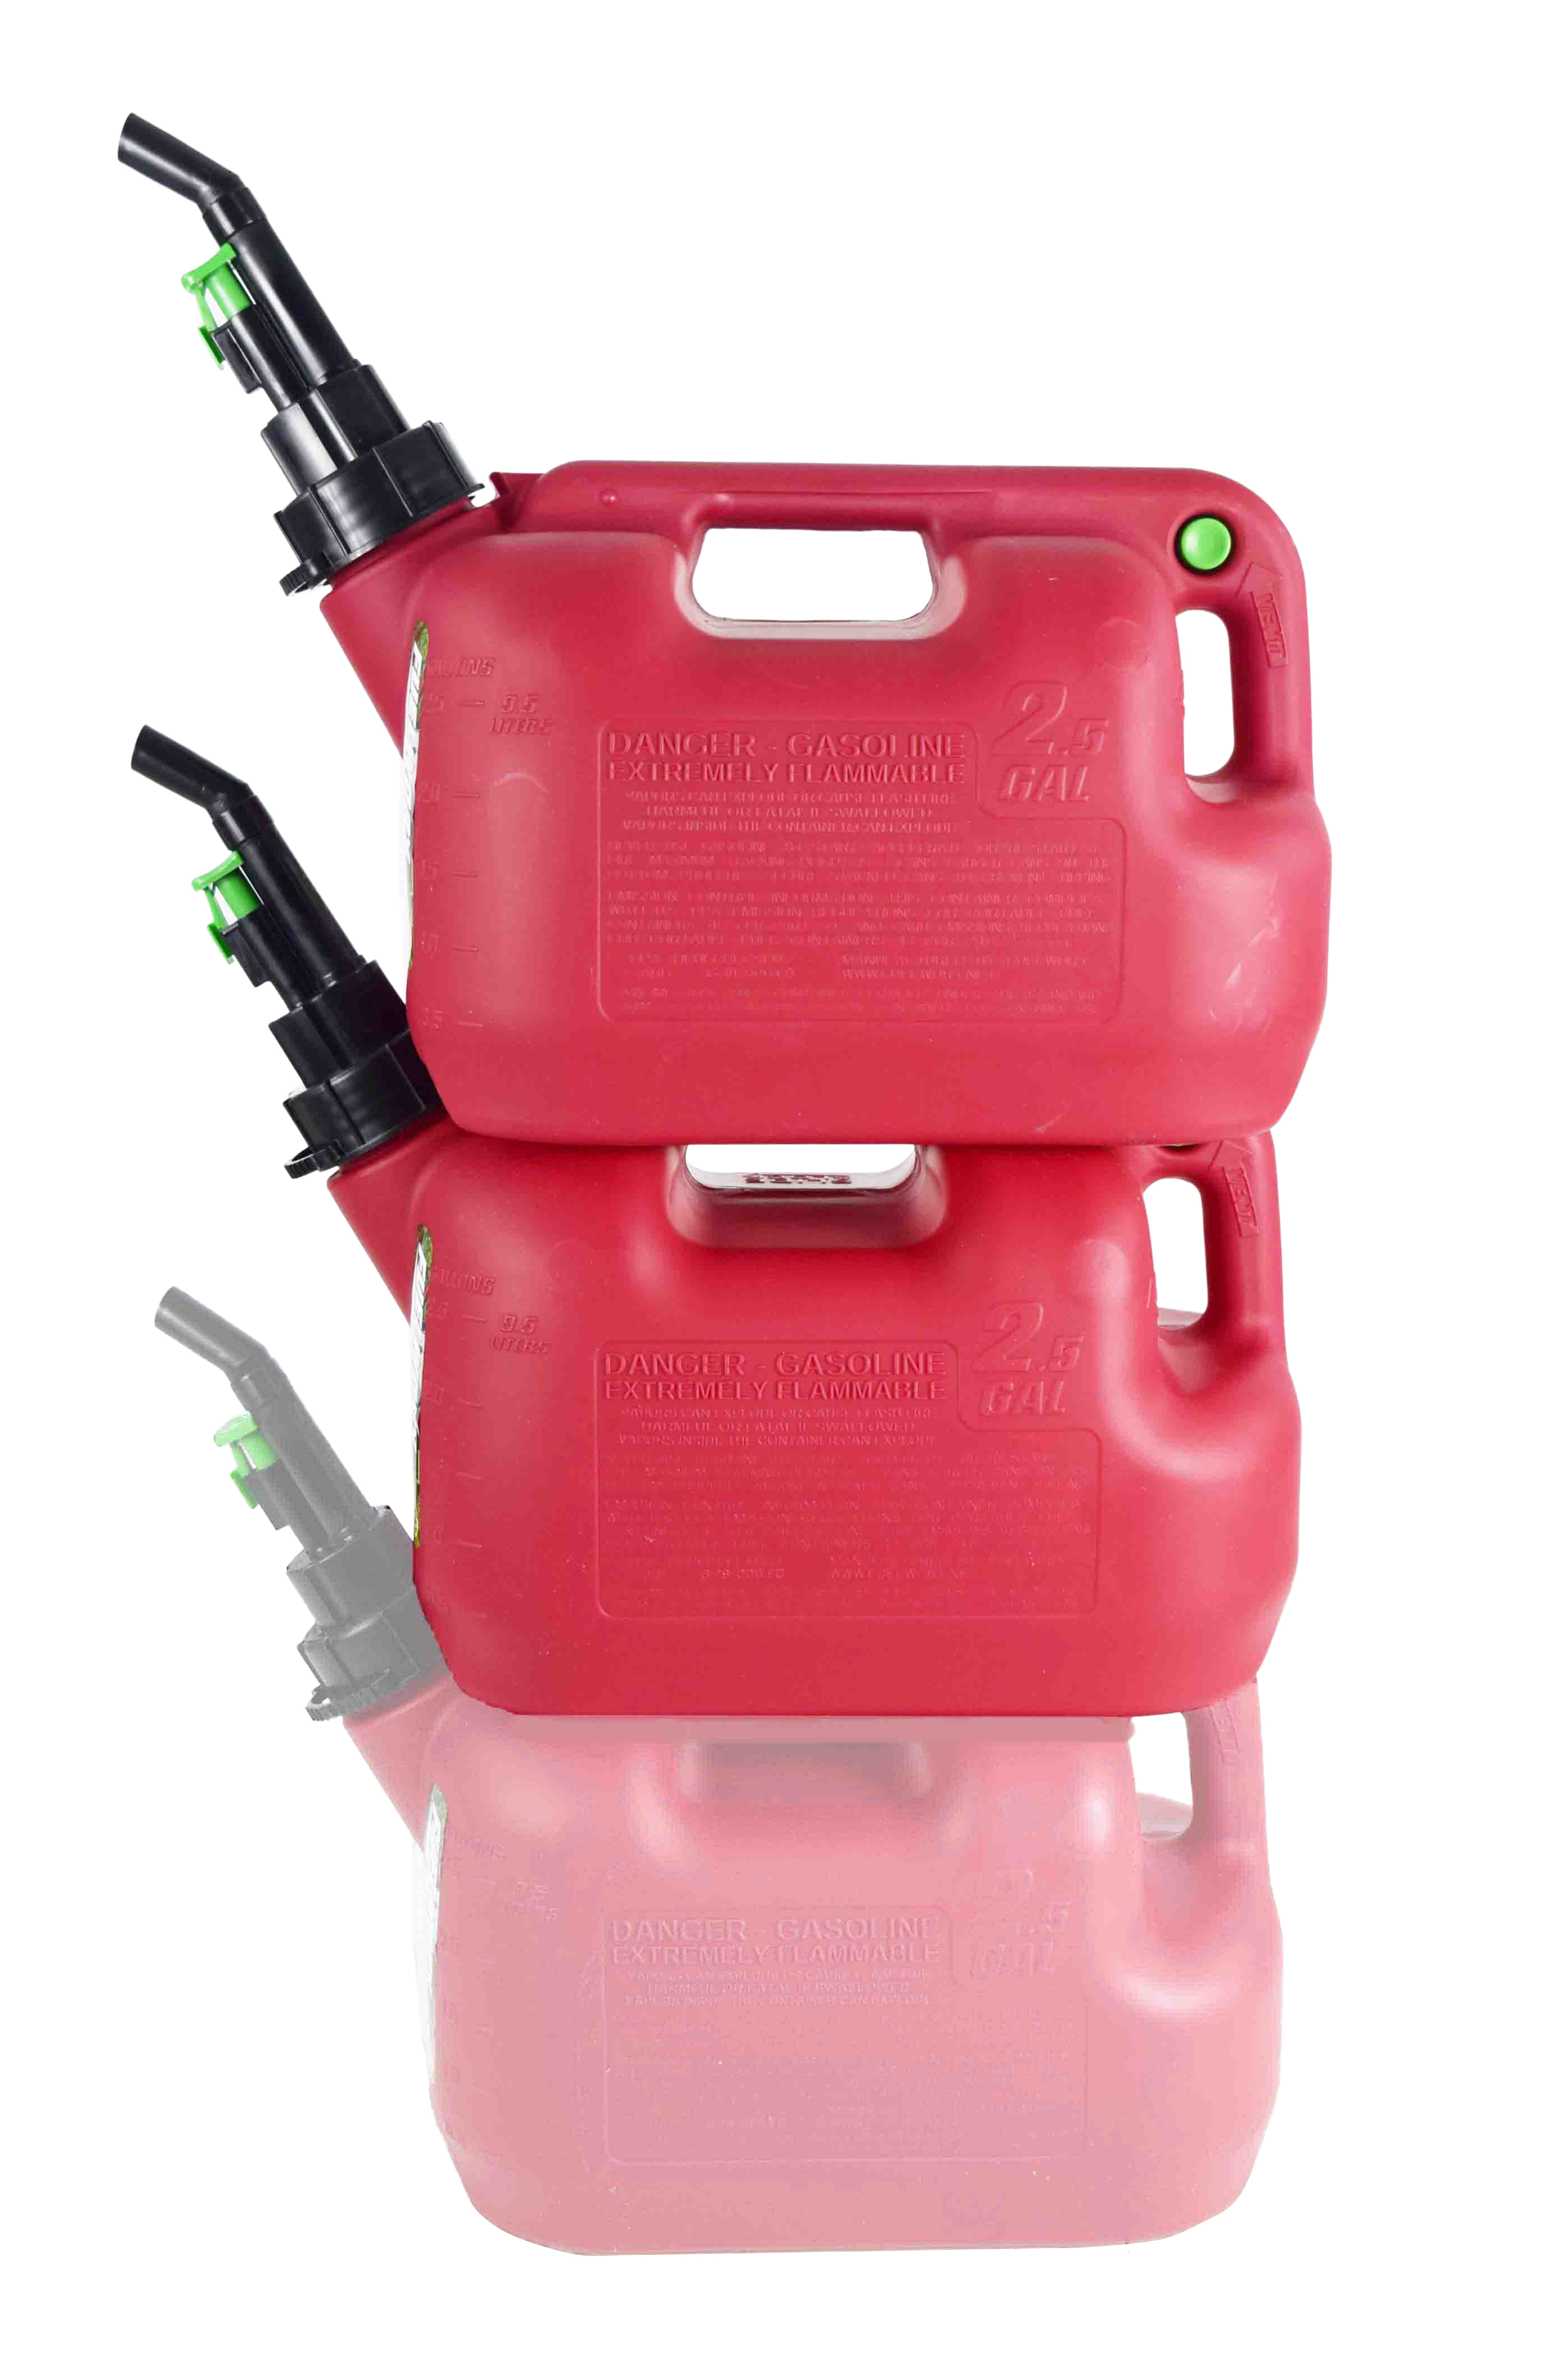 Fuelworx-Red-2.5-Gallon-Stackable-Fast-Pour-Gas-Fuel-Cans-CARB-Compliant-Made-in-The-USA-2.5-Gallon-Gas-2-Pack-image-1